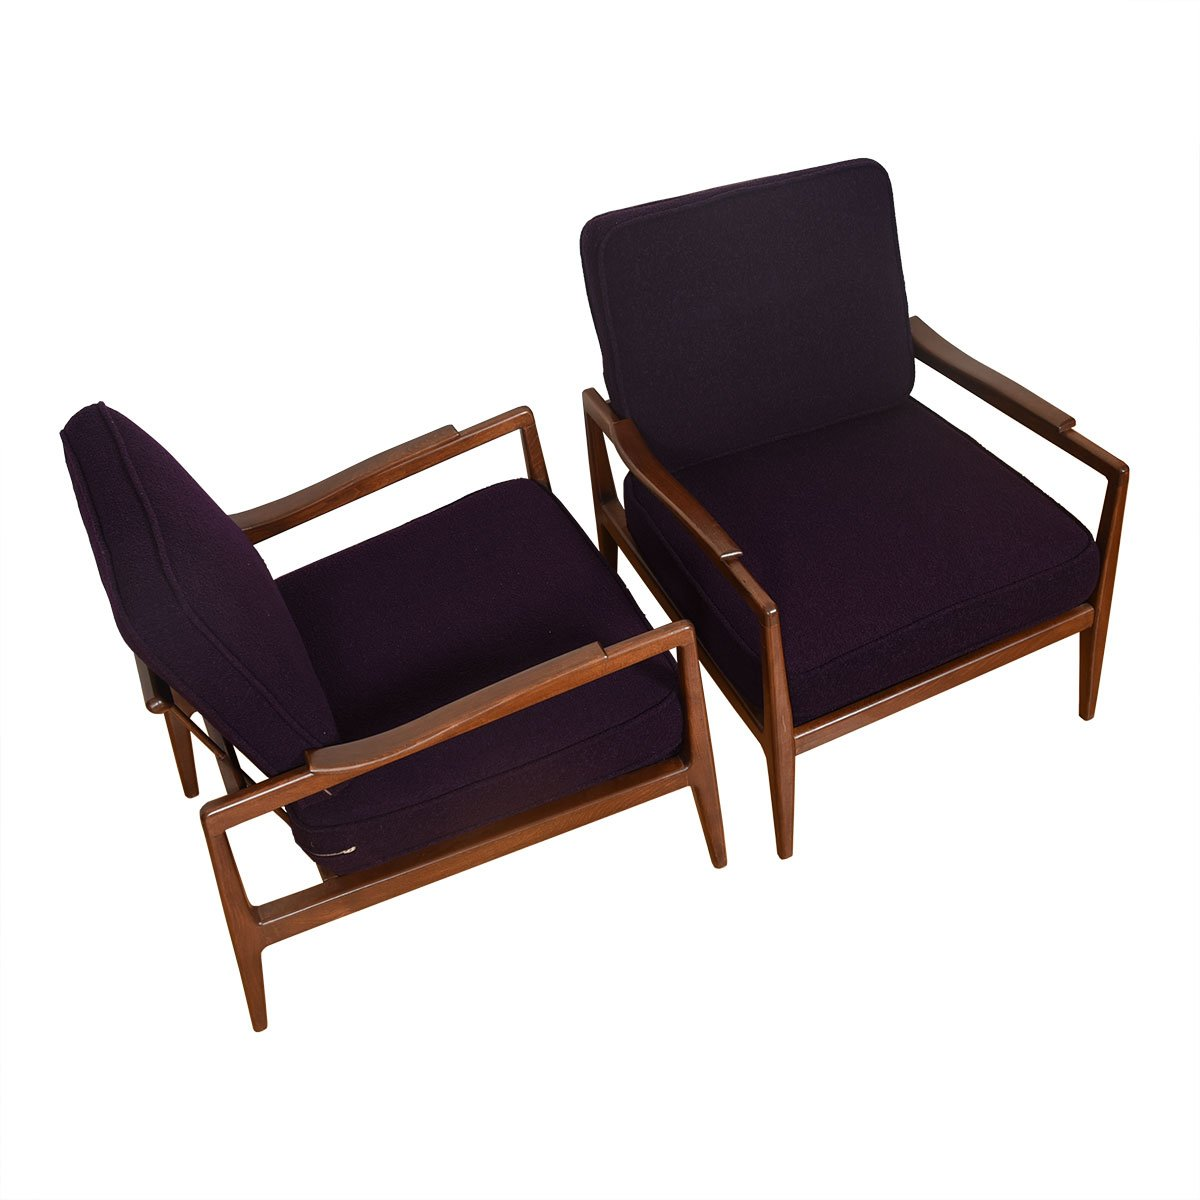 Pair of Edmond Spence Mid Century Modern Walnut Club Chairs